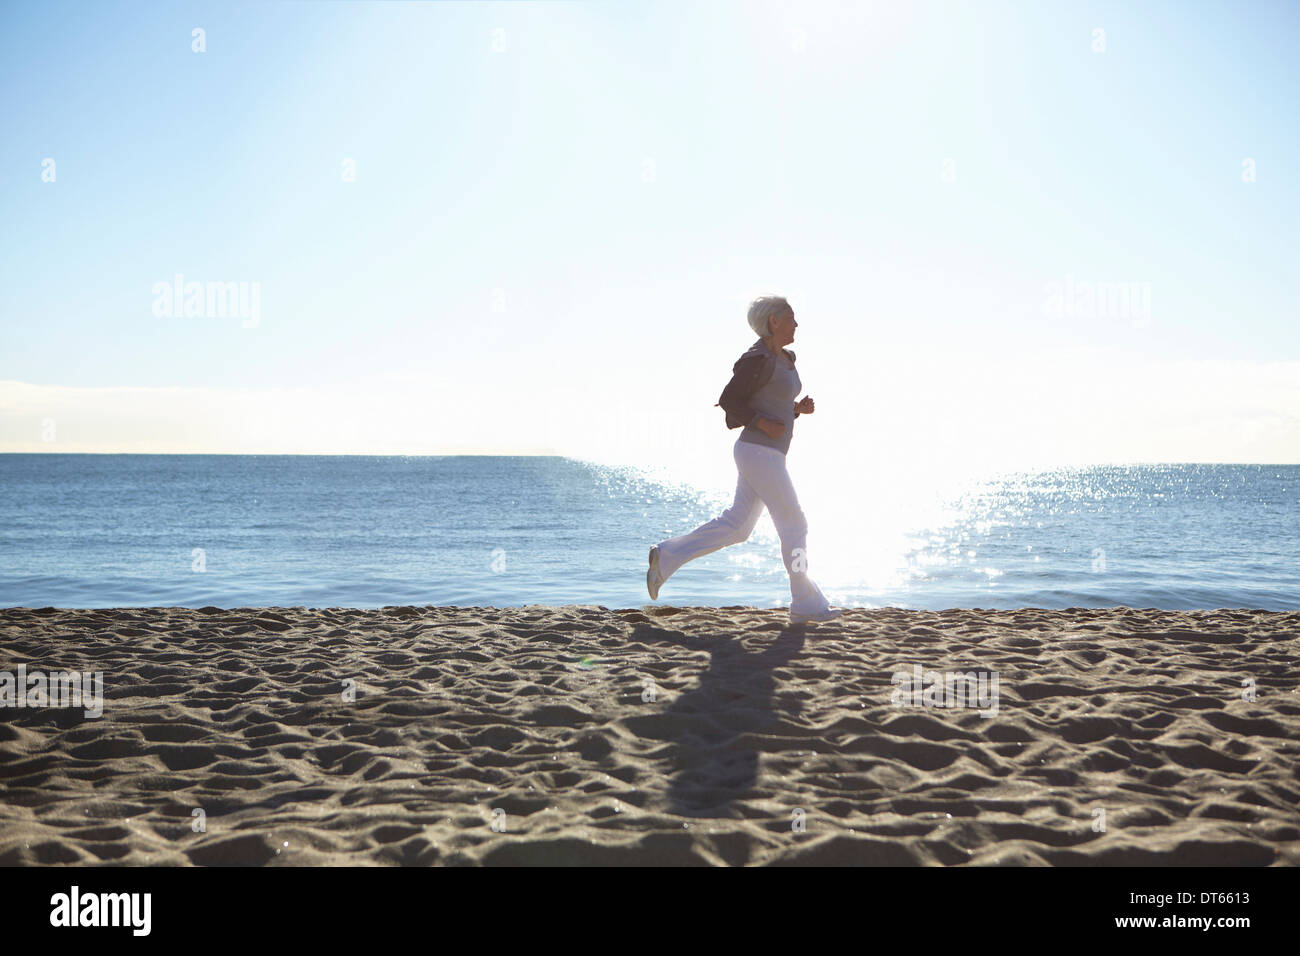 Young woman jogging on beach Photo Stock